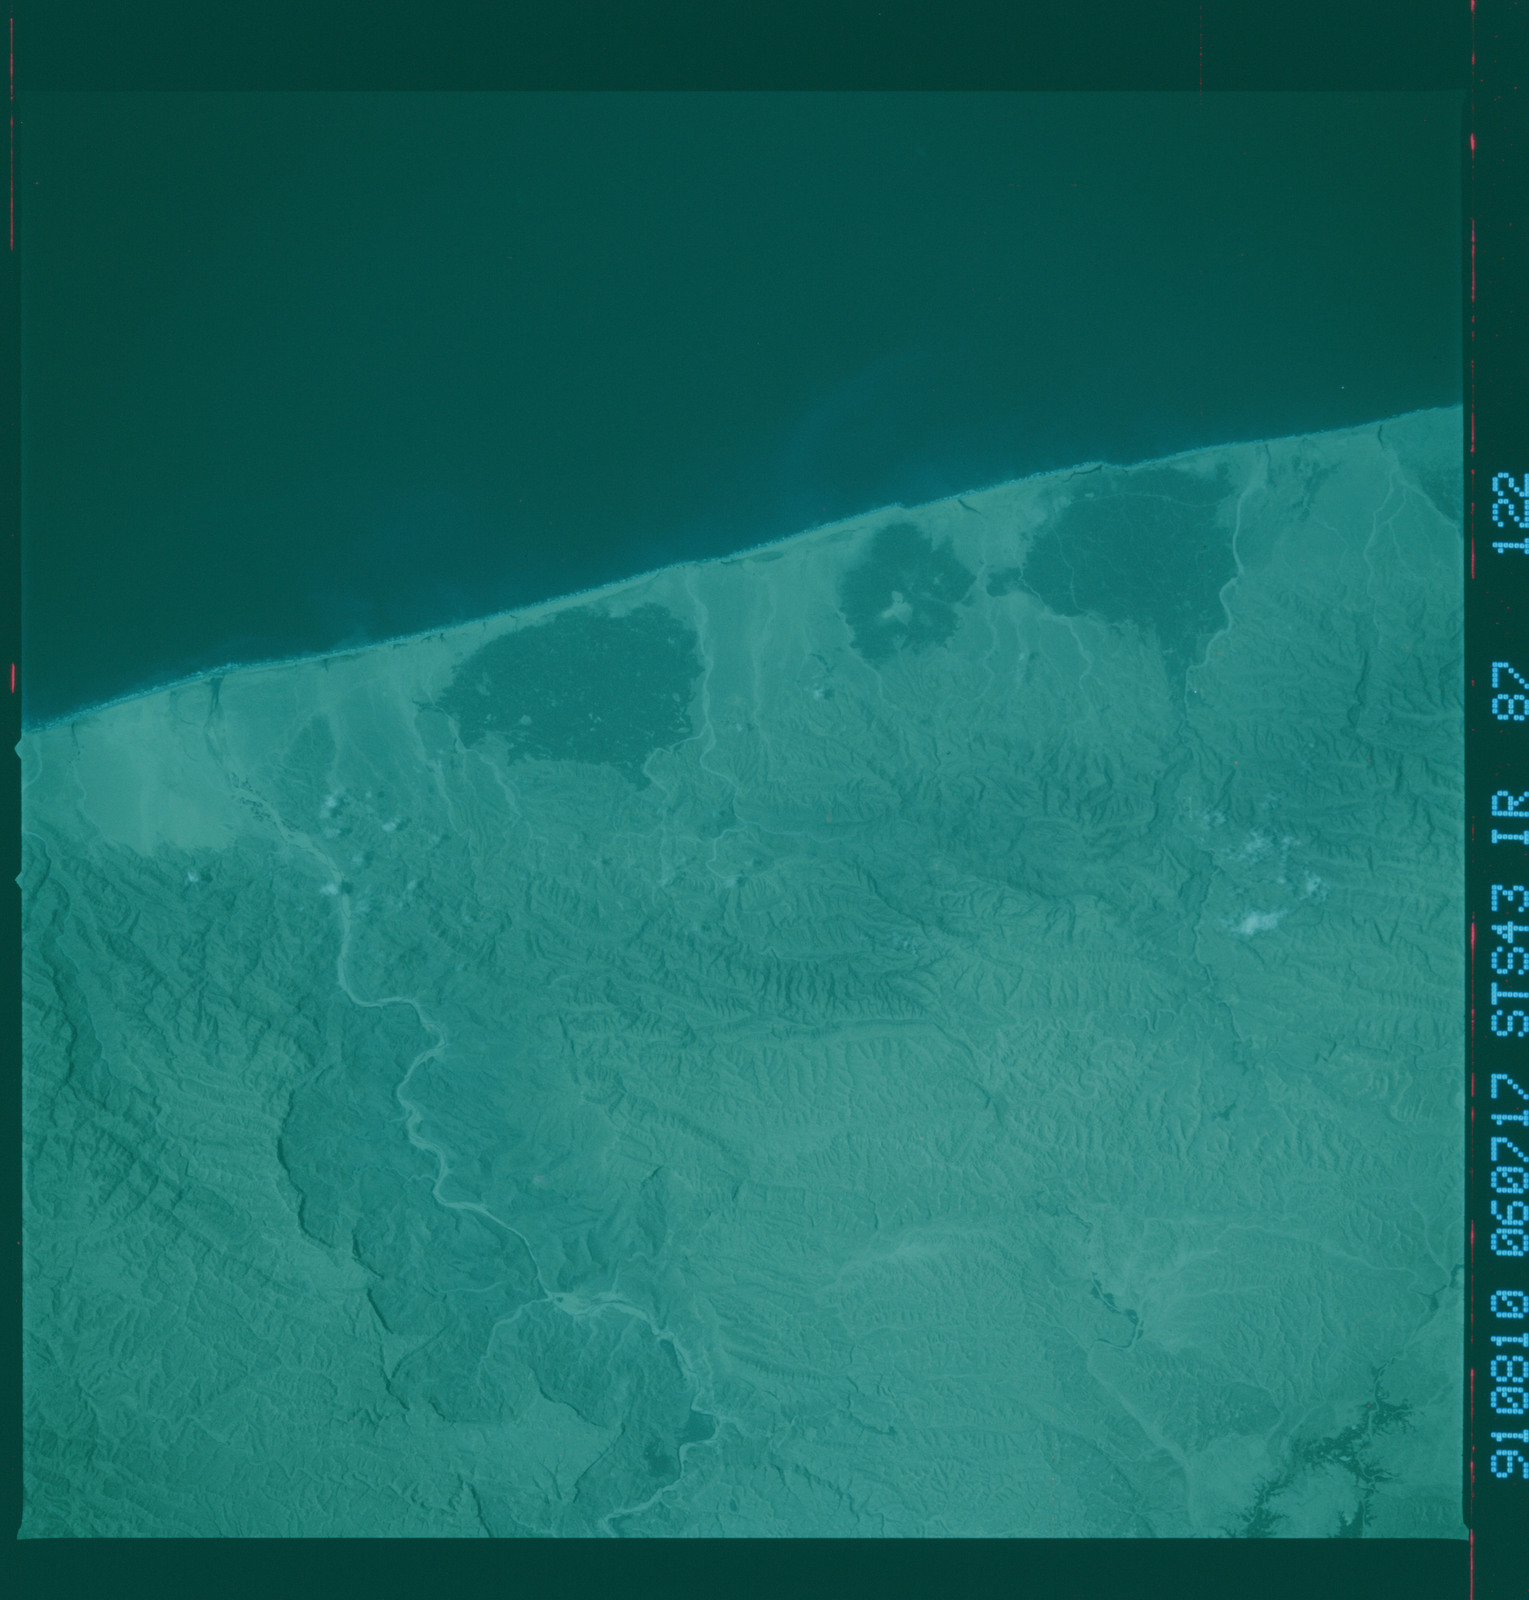 S43-87-122 - STS-043 - STS-43 earth observations